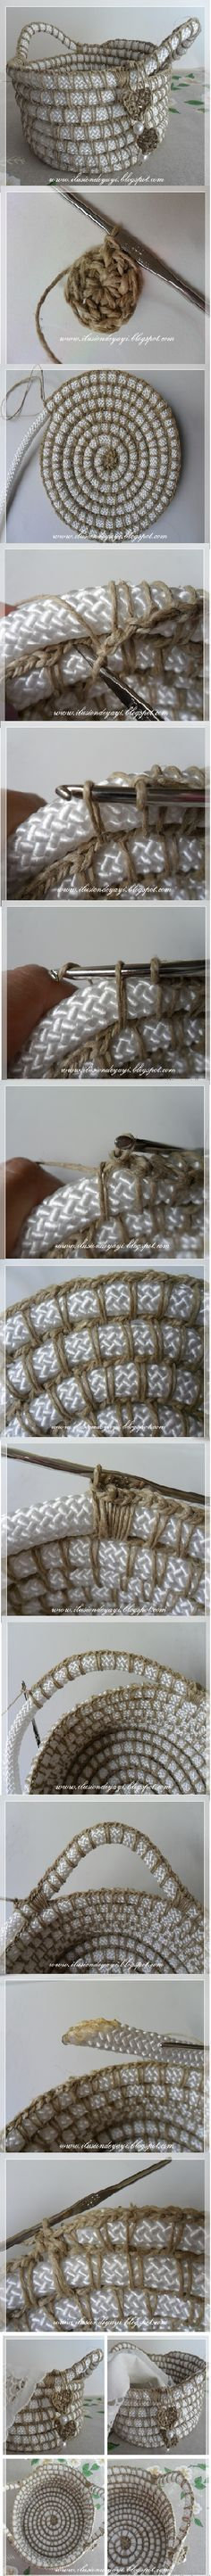 Crochet and Rope Basket - Tutorial ❥ // hf. Solves the problem with starting in the middle for baskets, mats and rugs, whether yarn or fabric strips. Crochet Rope, Knit Or Crochet, Crochet Crafts, Yarn Crafts, Crochet Stitches, Crochet Patterns, Yarn Projects, Crochet Projects, Rope Basket